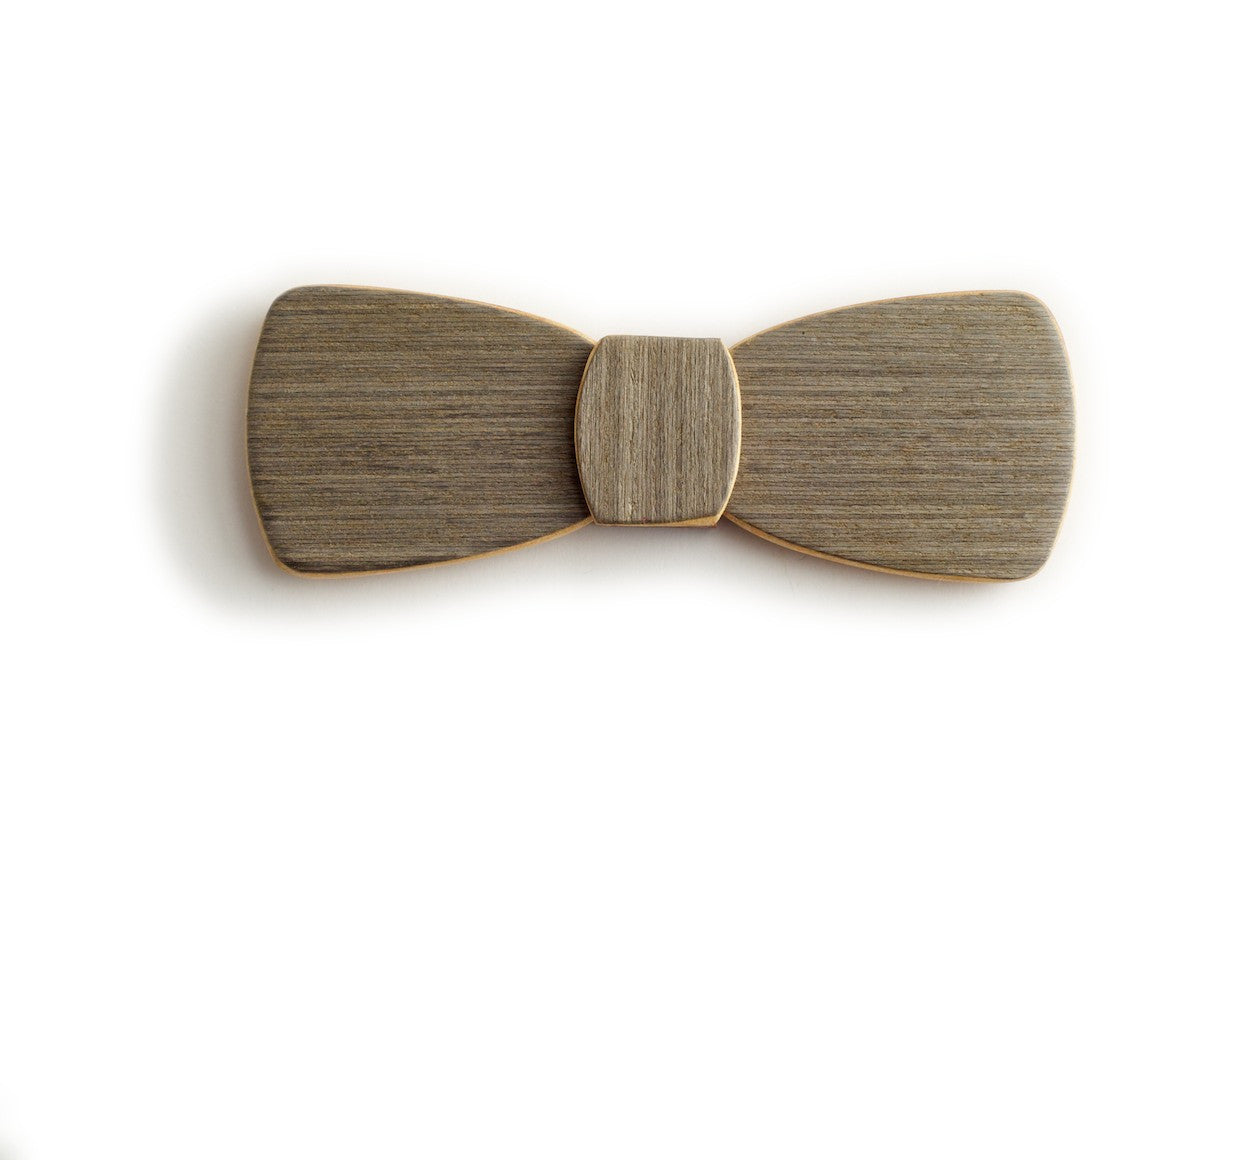 Batwing Wood Bow Tie – White noise